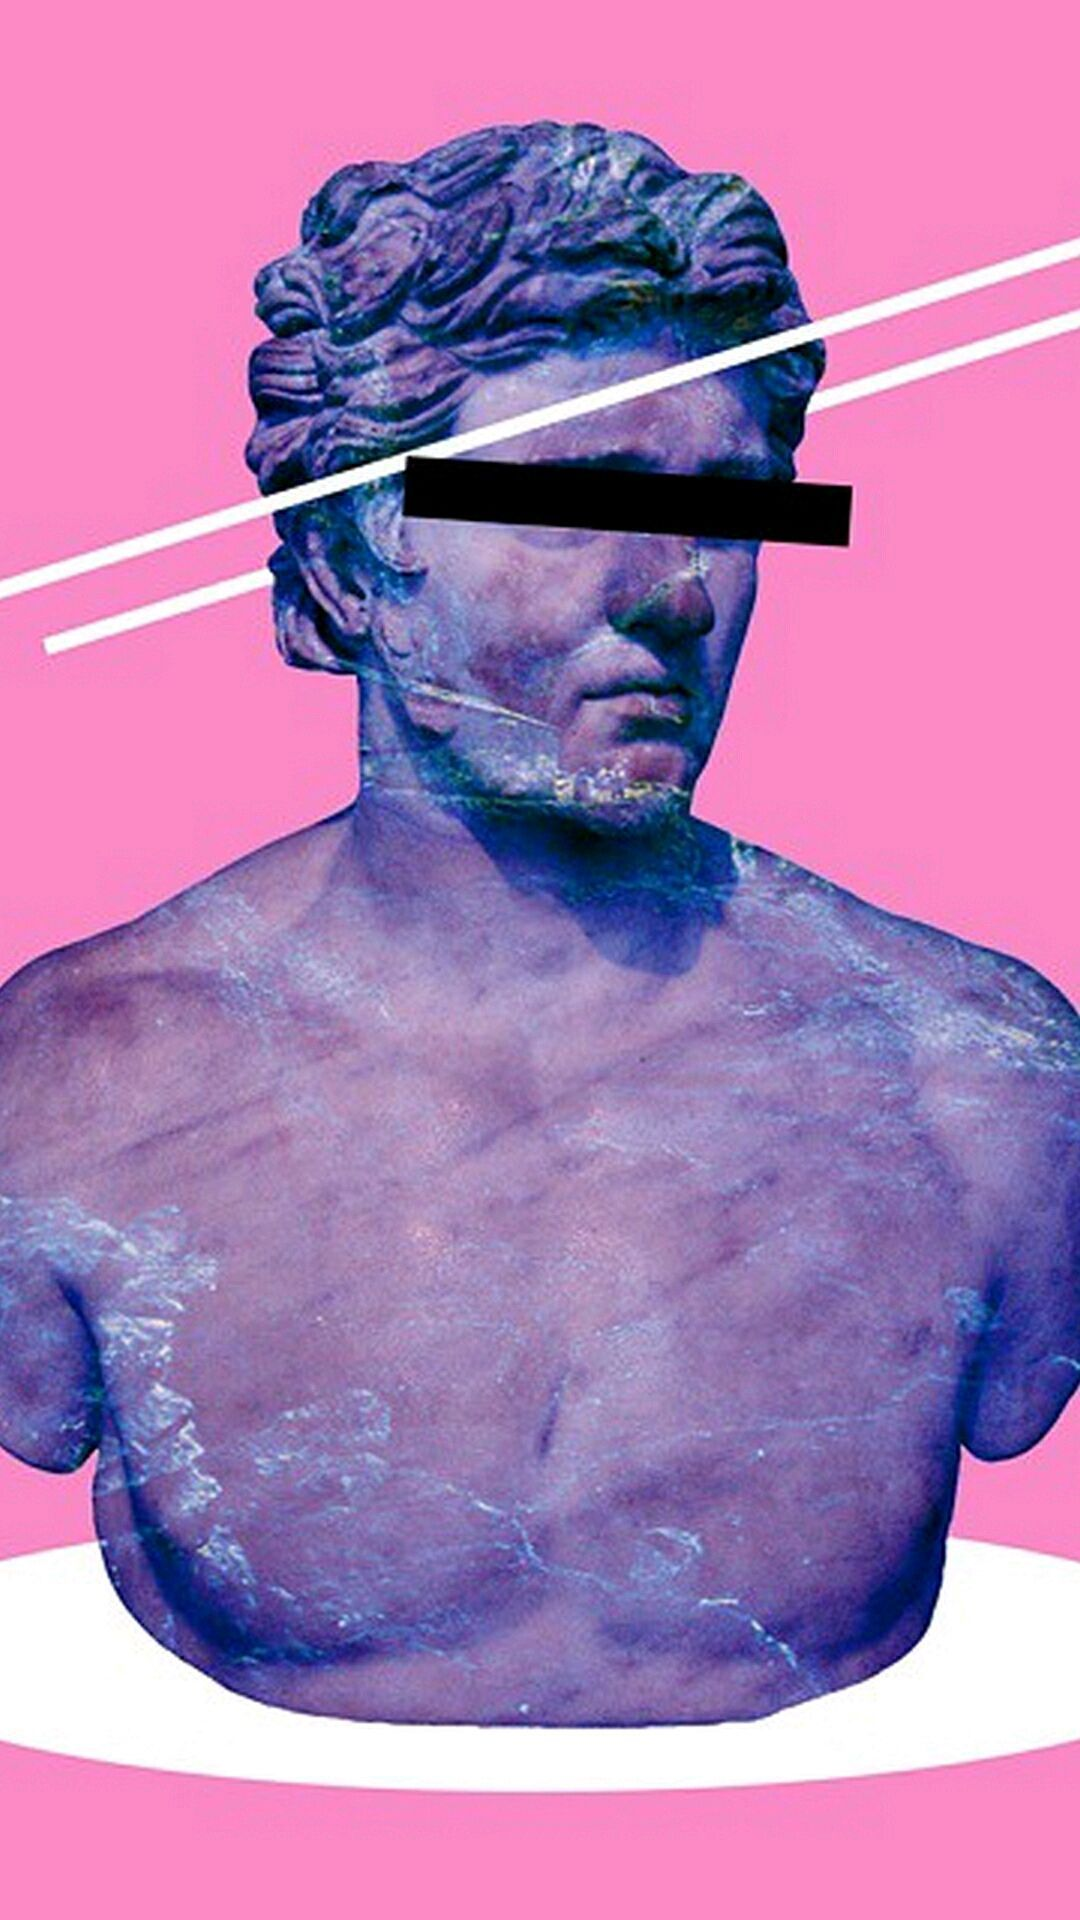 vaporwave wallpapers – ✖statues✖